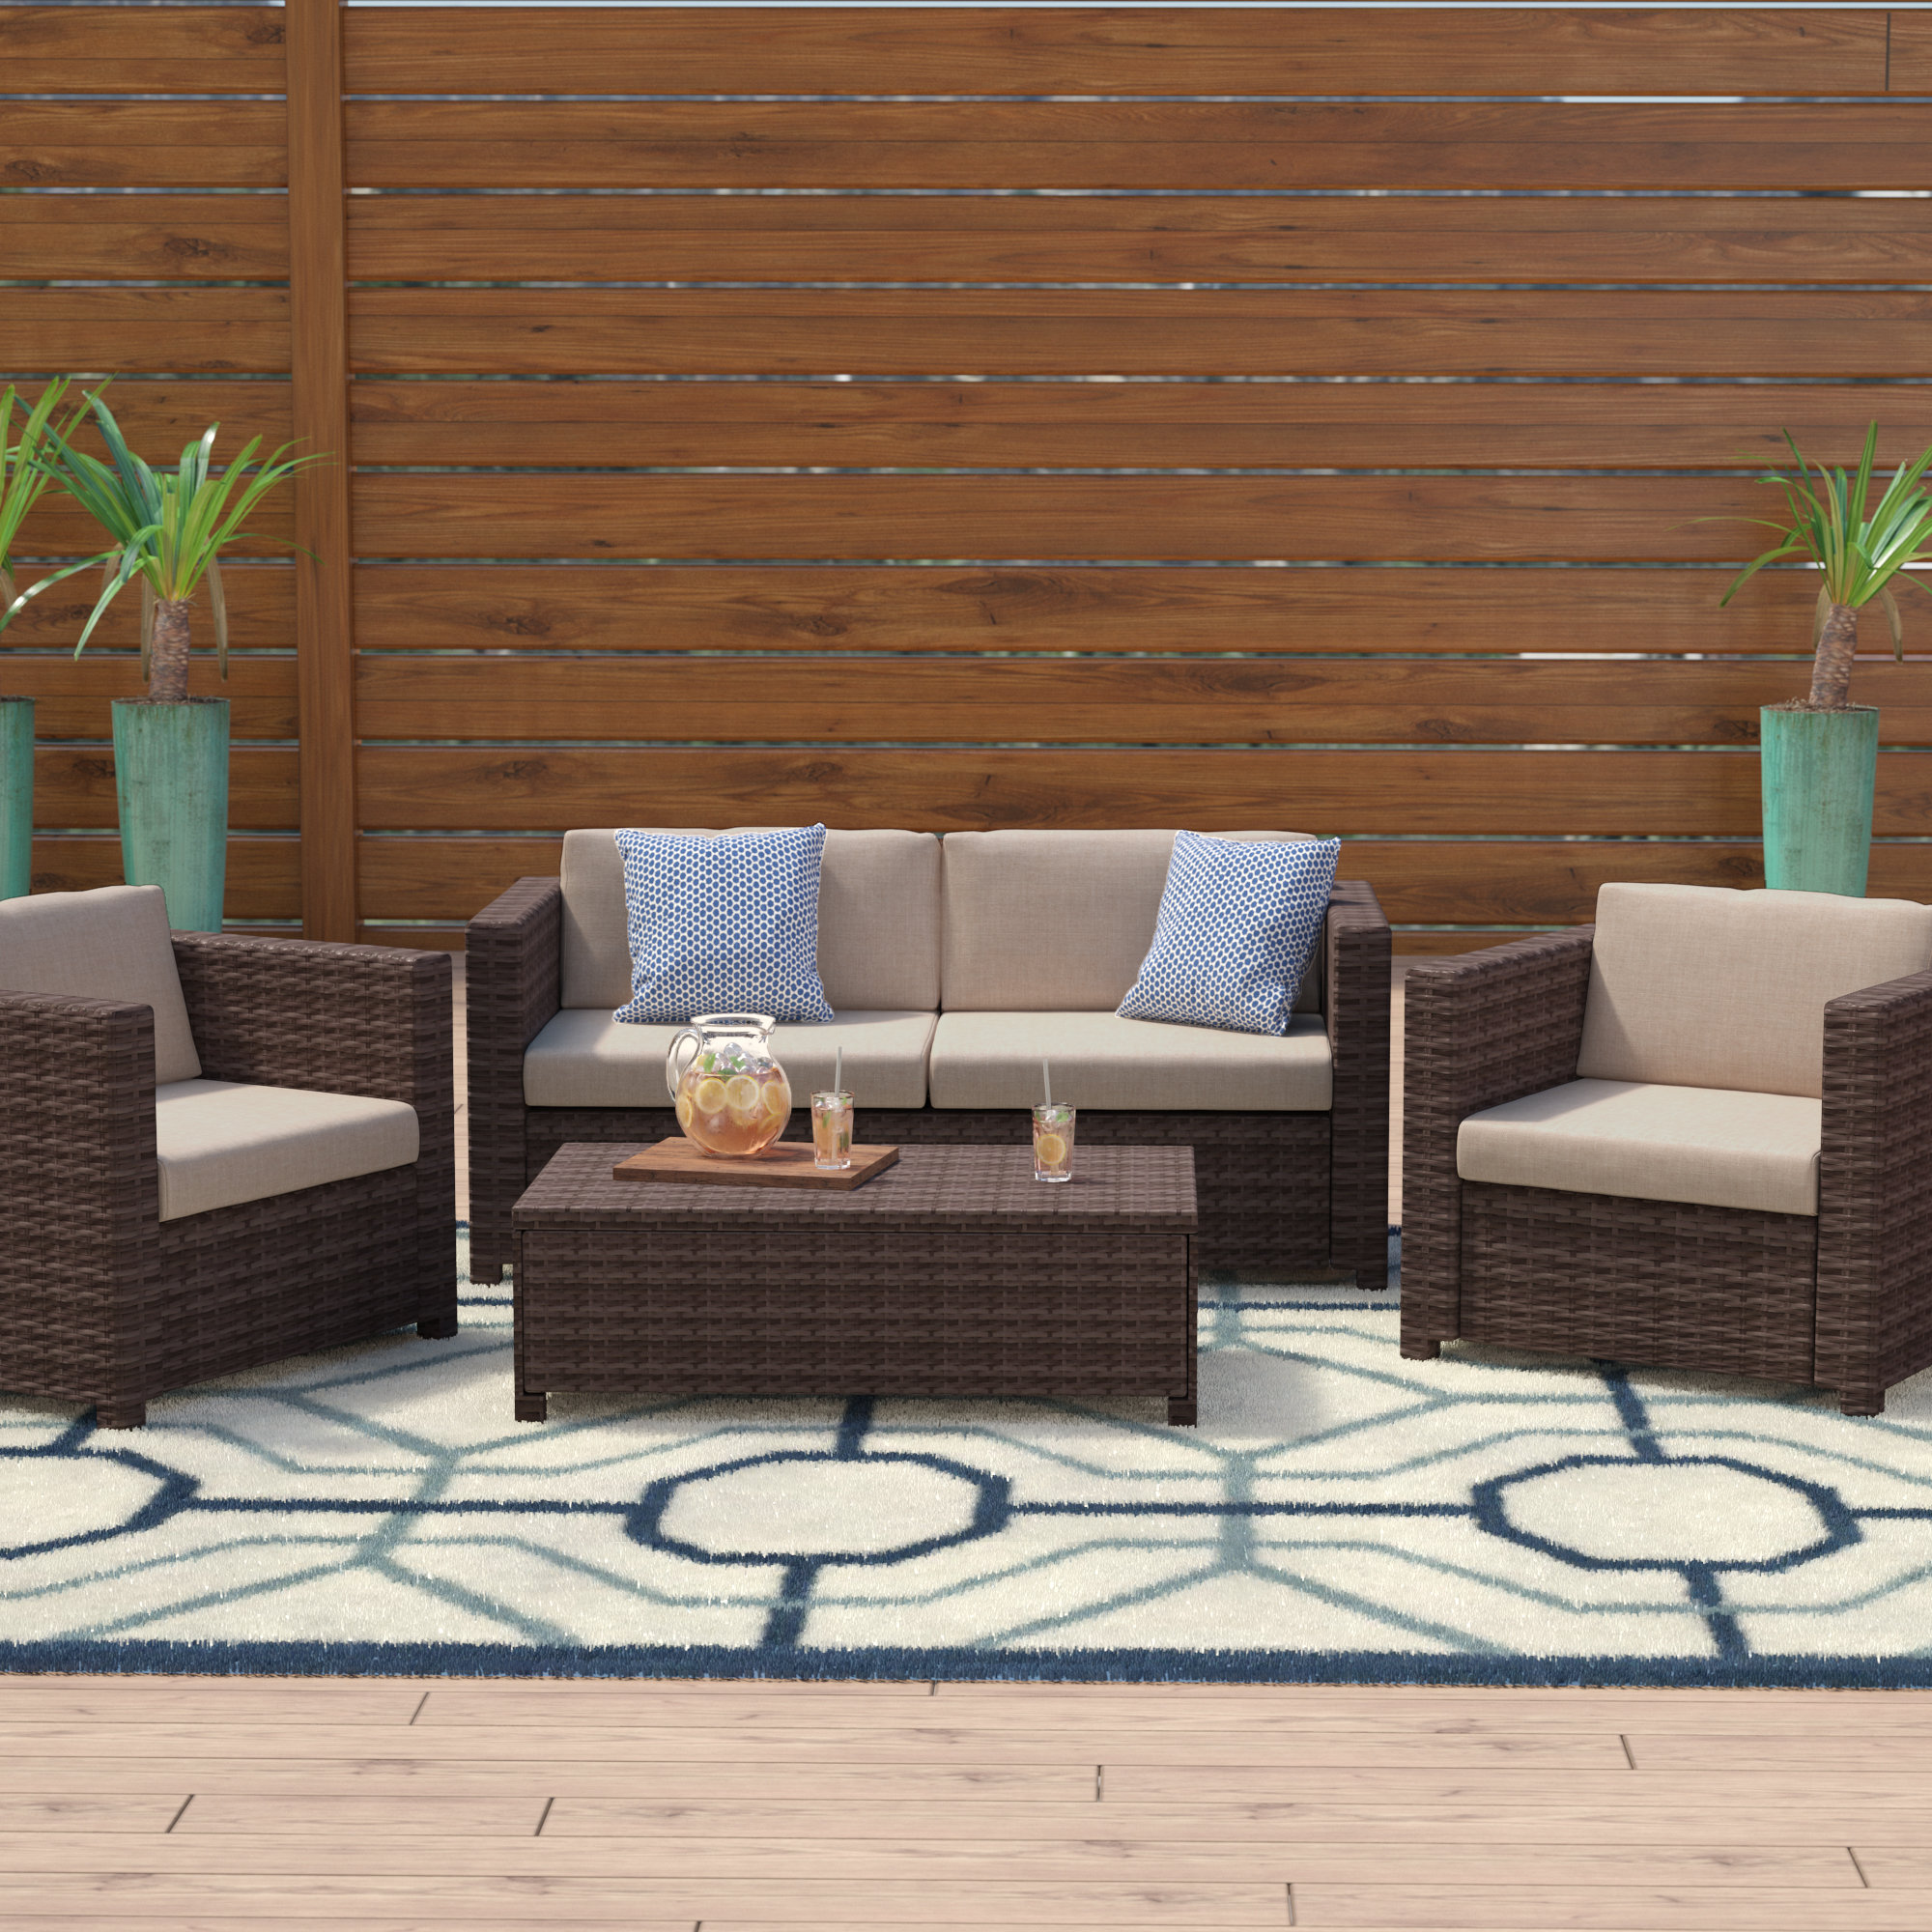 Mercury Row Kappa 4 Piece Rattan Sofa Set with Cushions & Reviews | Wayfair